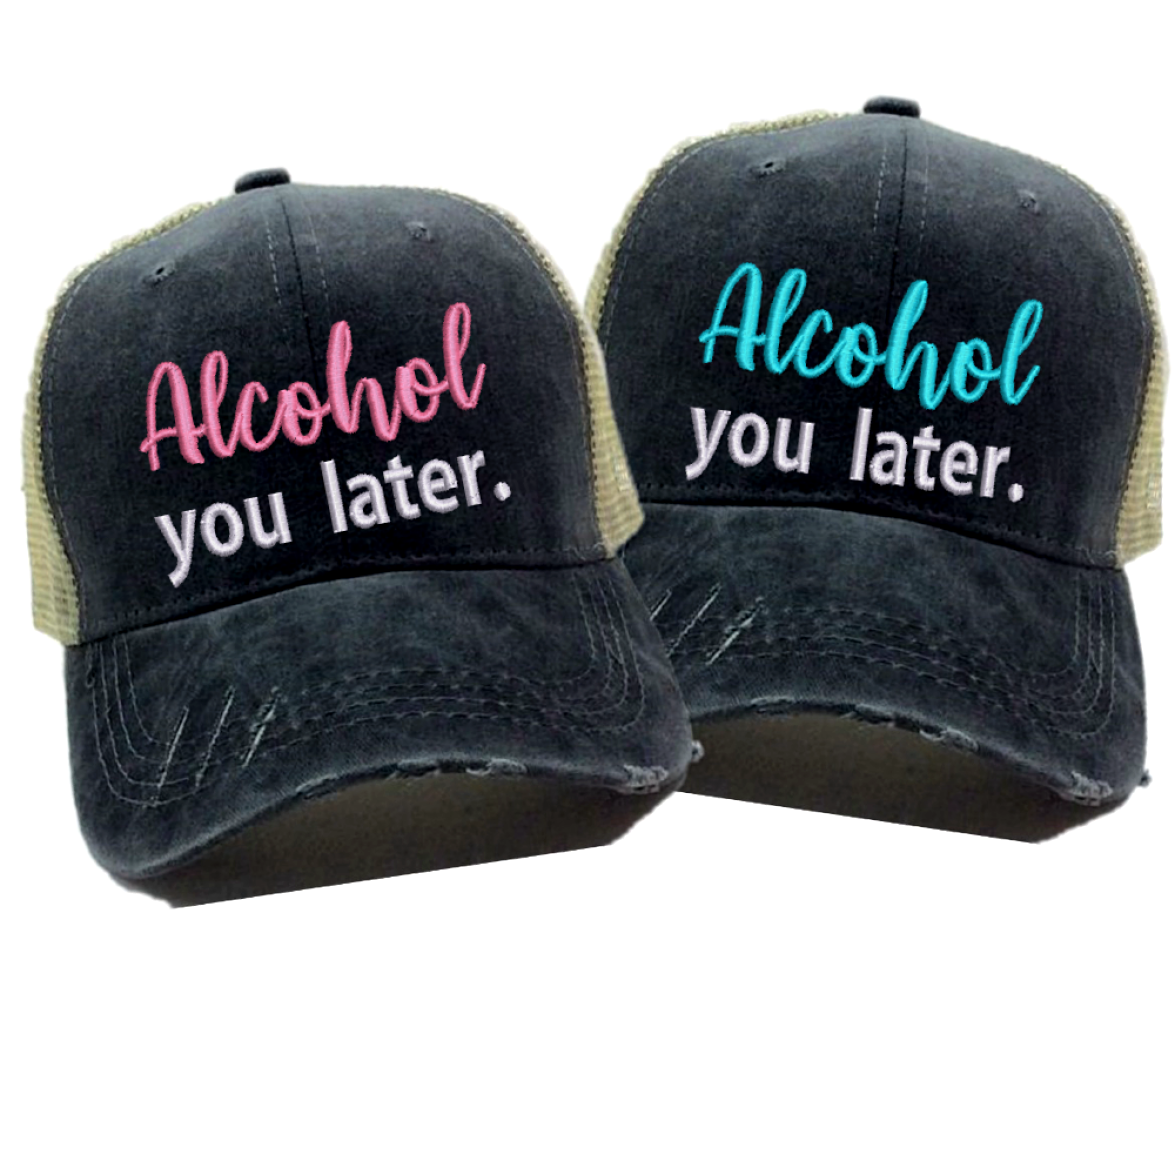 f2e555a0 Alcohol You Later Custom Distressed Trucker Hat For Men Or Women -  Embroidered - Made To